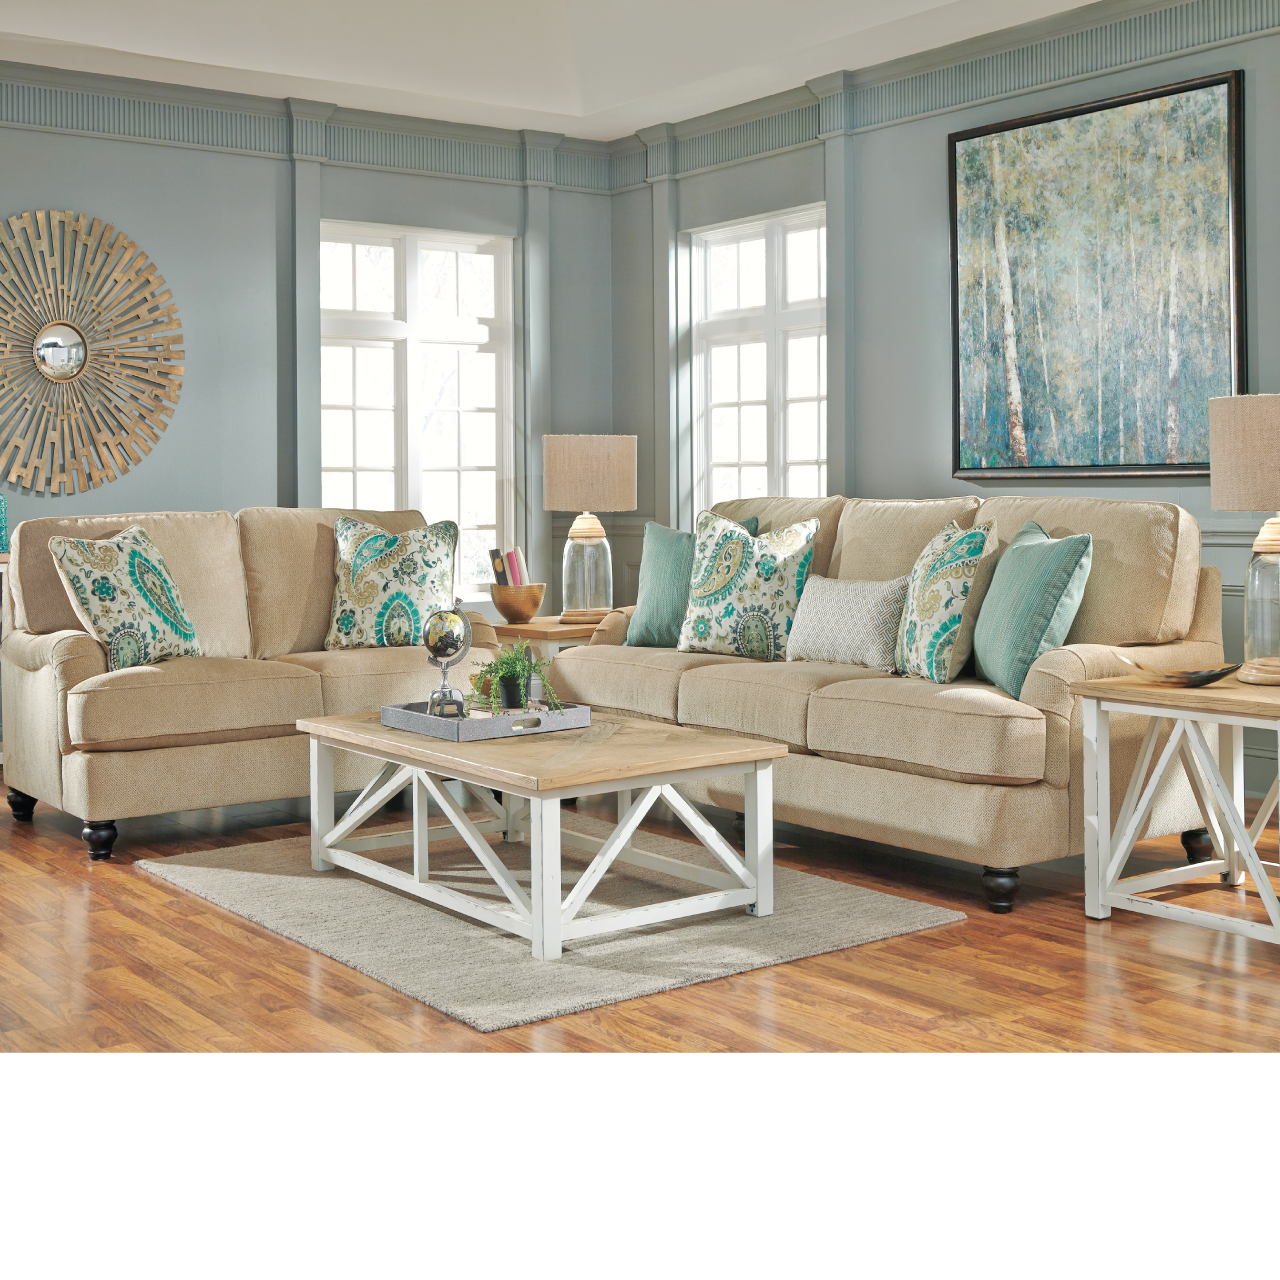 coastal living room ideas: lochian sofaashley furniture at